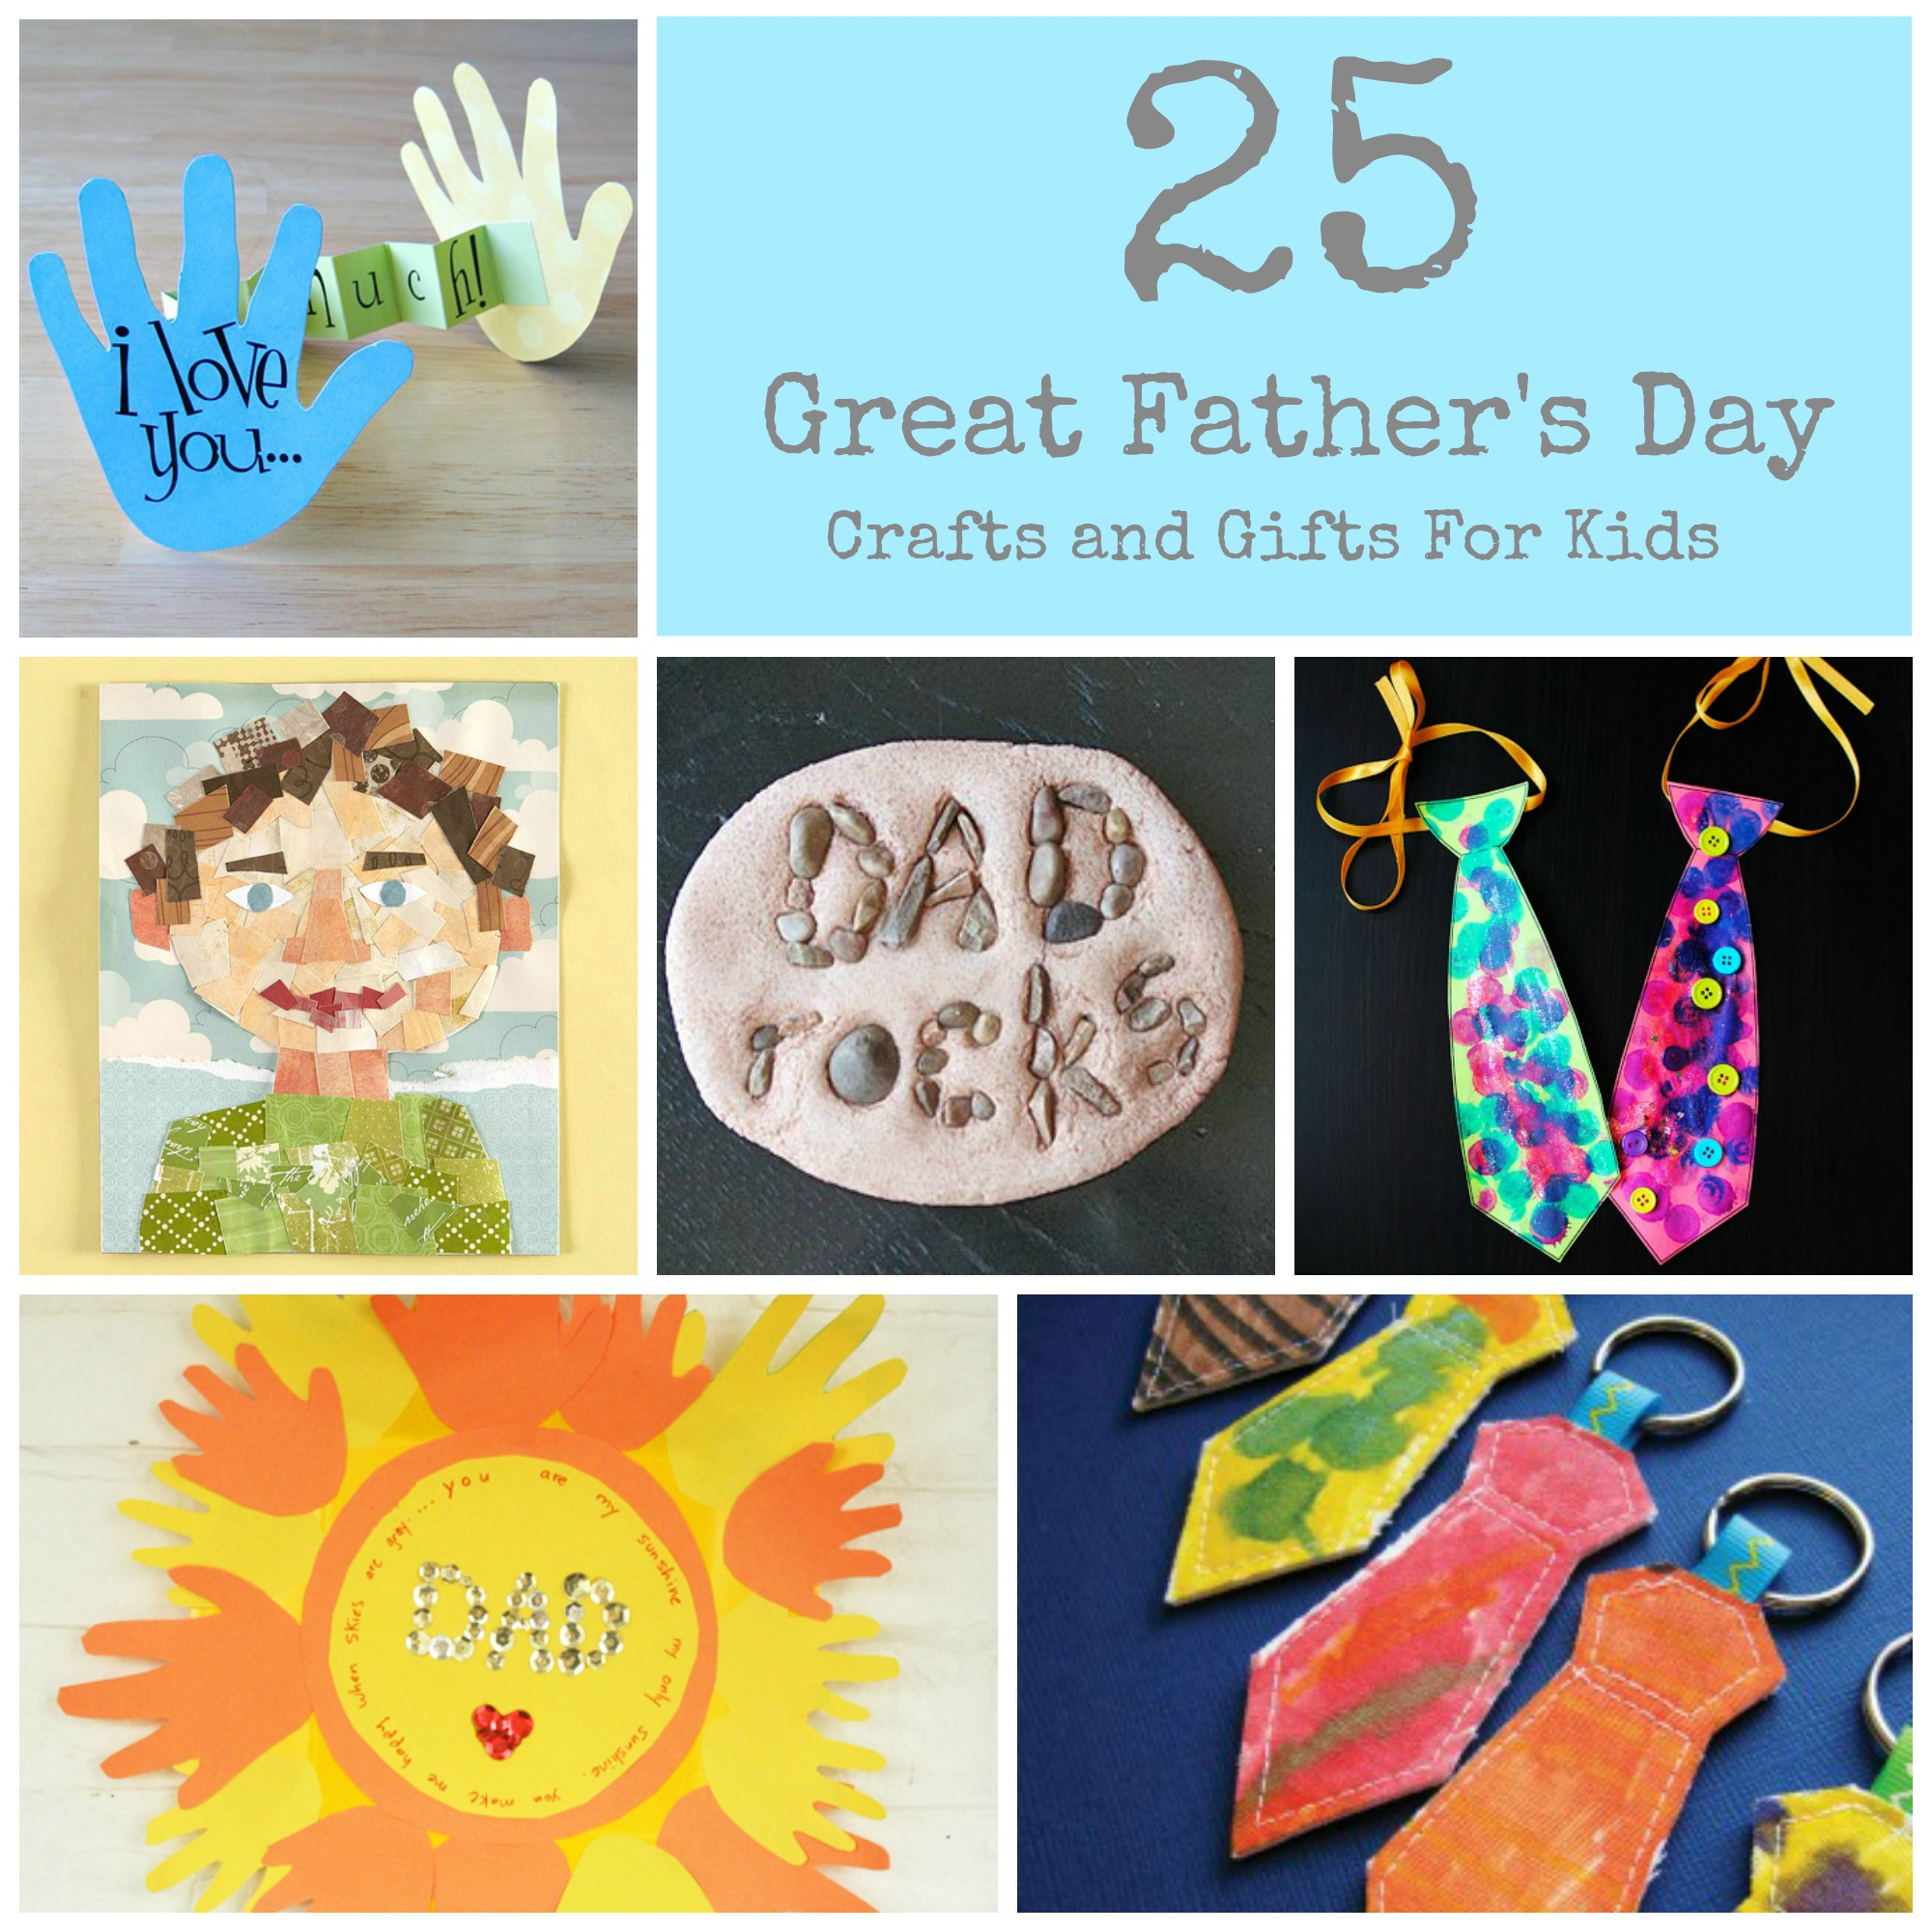 Great Fathers Day Craft Ideas